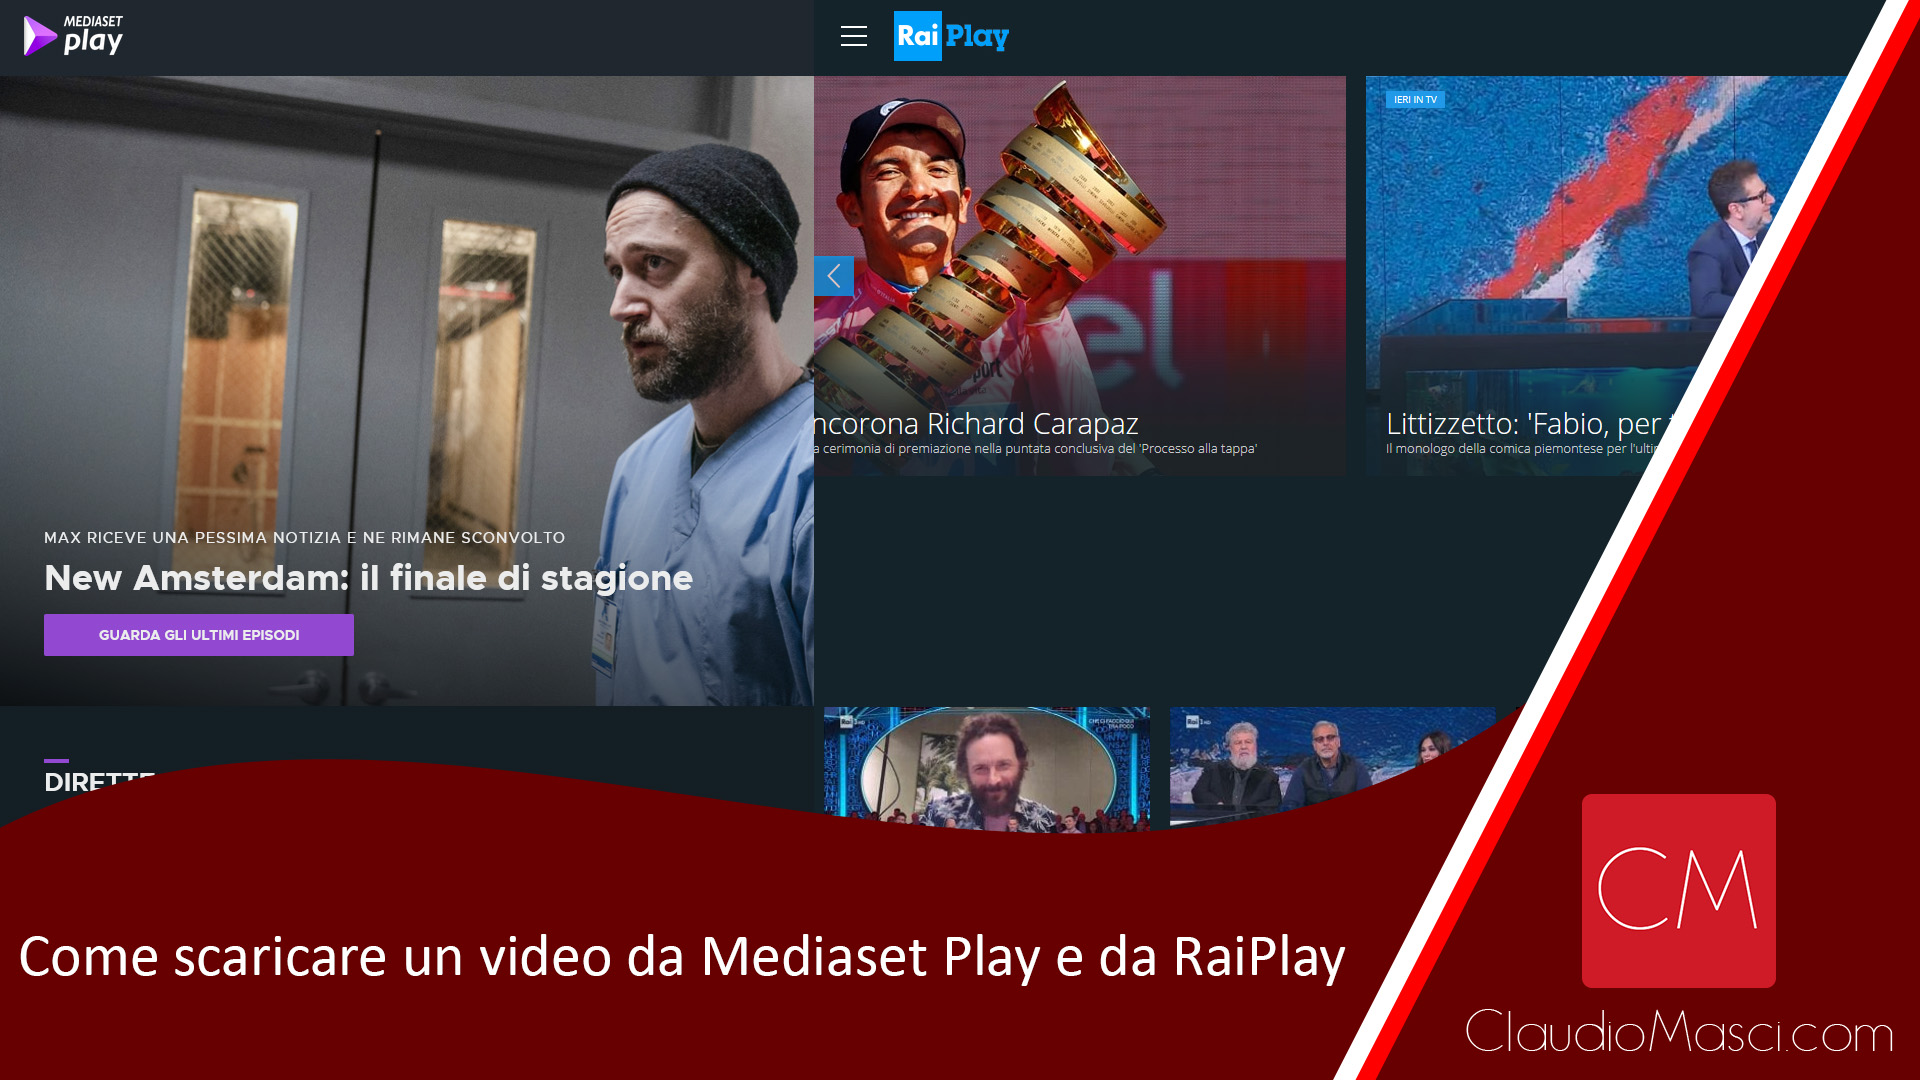 Come scaricare un video da Mediaset Play e da RaiPlay